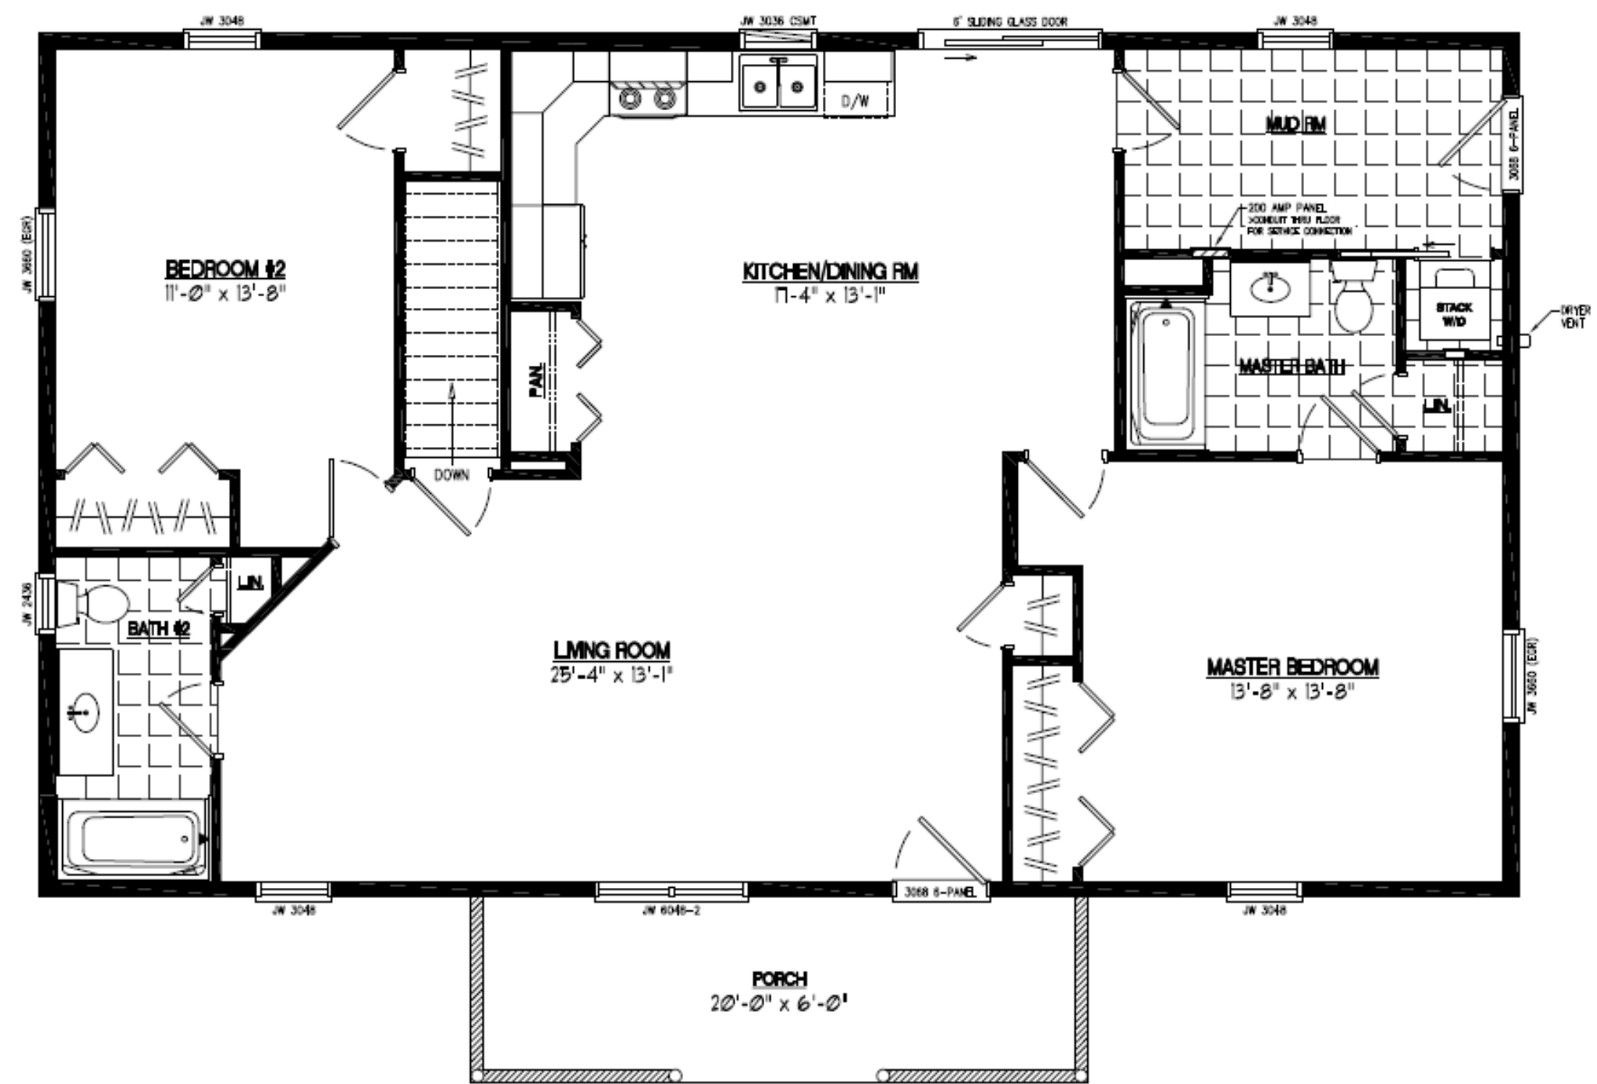 36 X 48 House Plans | Wiring Diagram Database